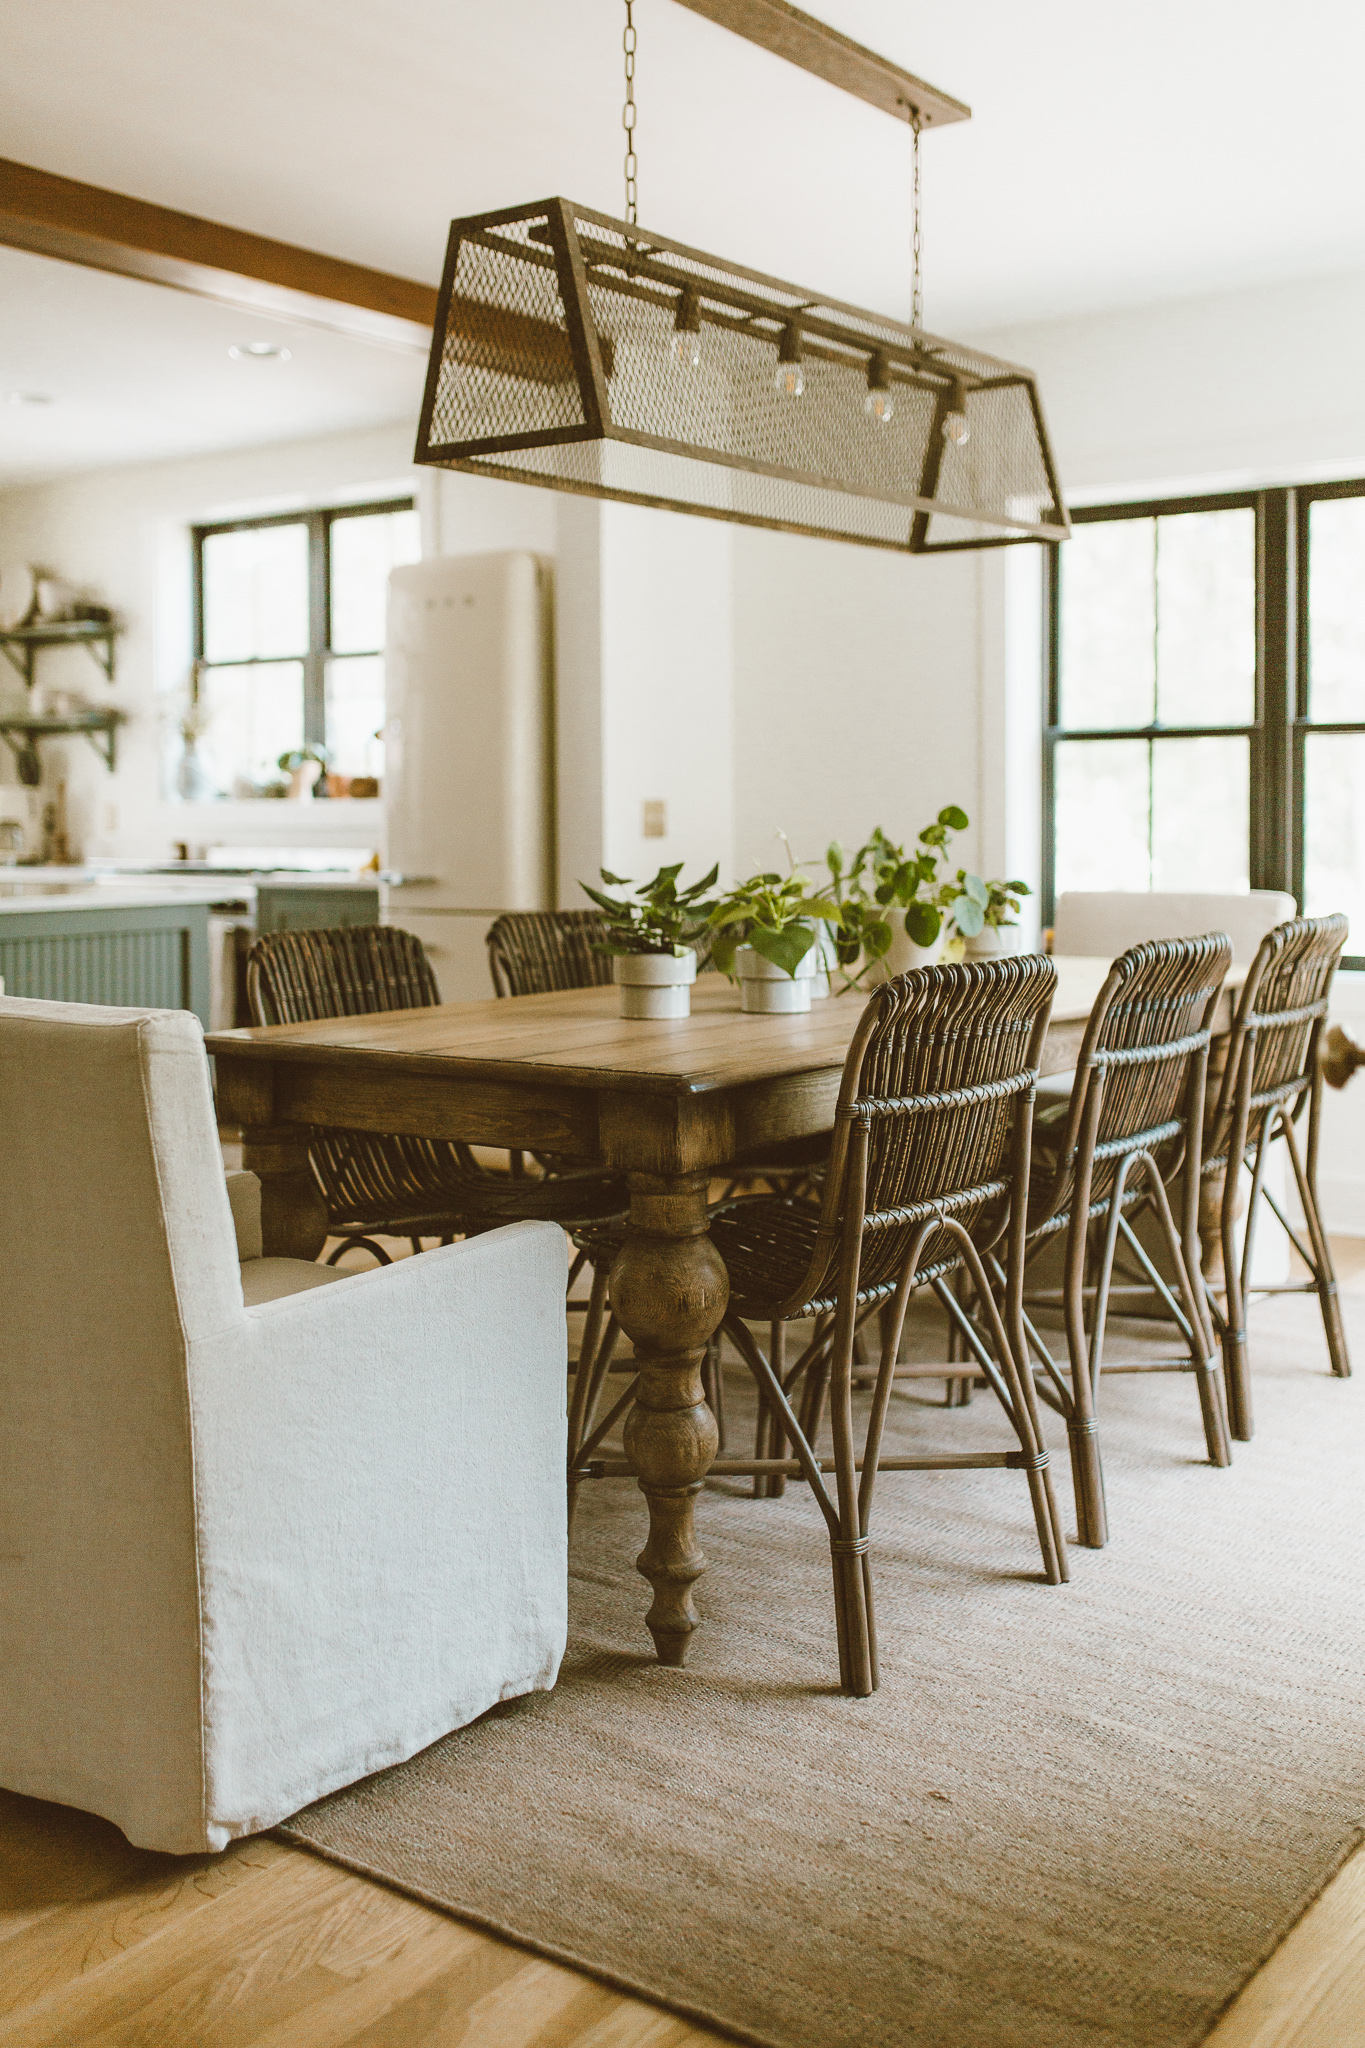 design-dining-space-tips-forthehome-003.jpg